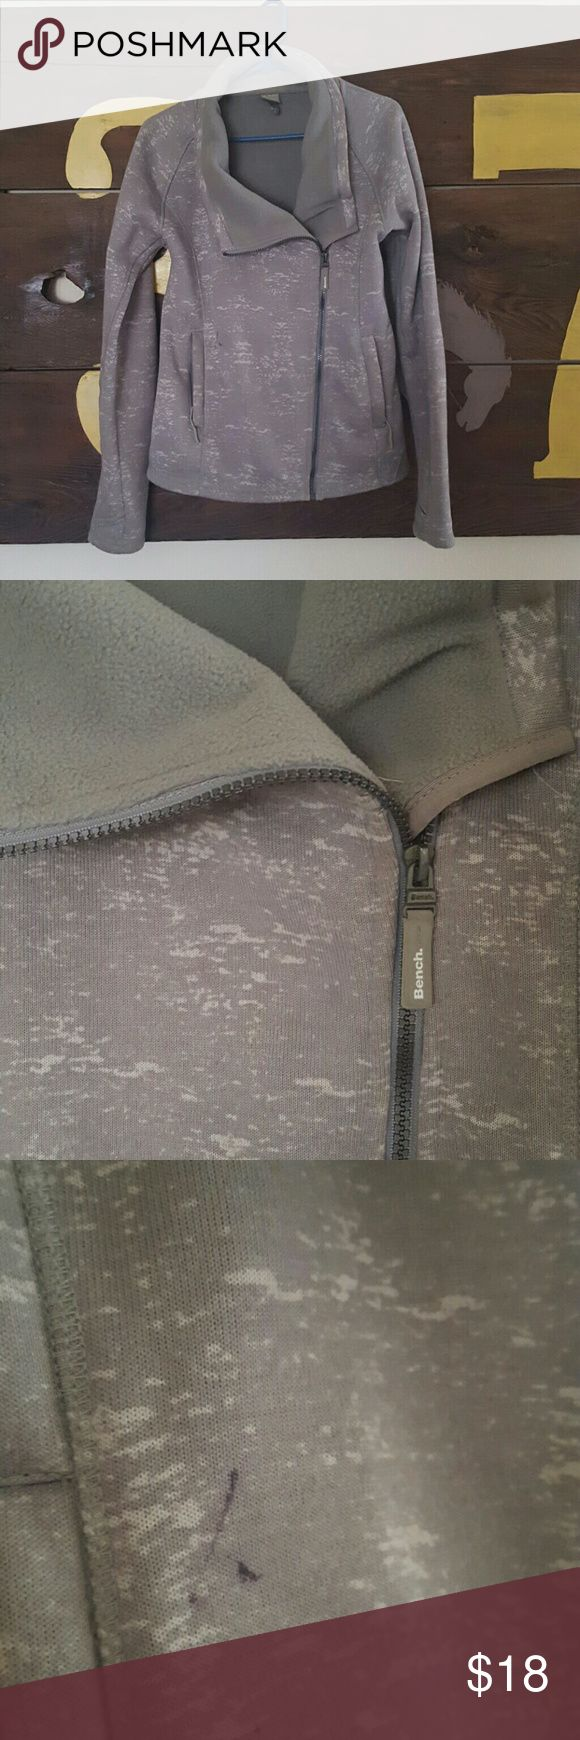 """Bench Jacket Super flattering. Fitted. Fleece lined. Gray with white """"mottling"""". Small ink mark next to pocket. One label is coming unstitched. Last two photos show. Price reflects flaws. Otherwise great condition, super comfy, and very flattering. Size large but fits like a medium. Bench Jackets & Coats"""